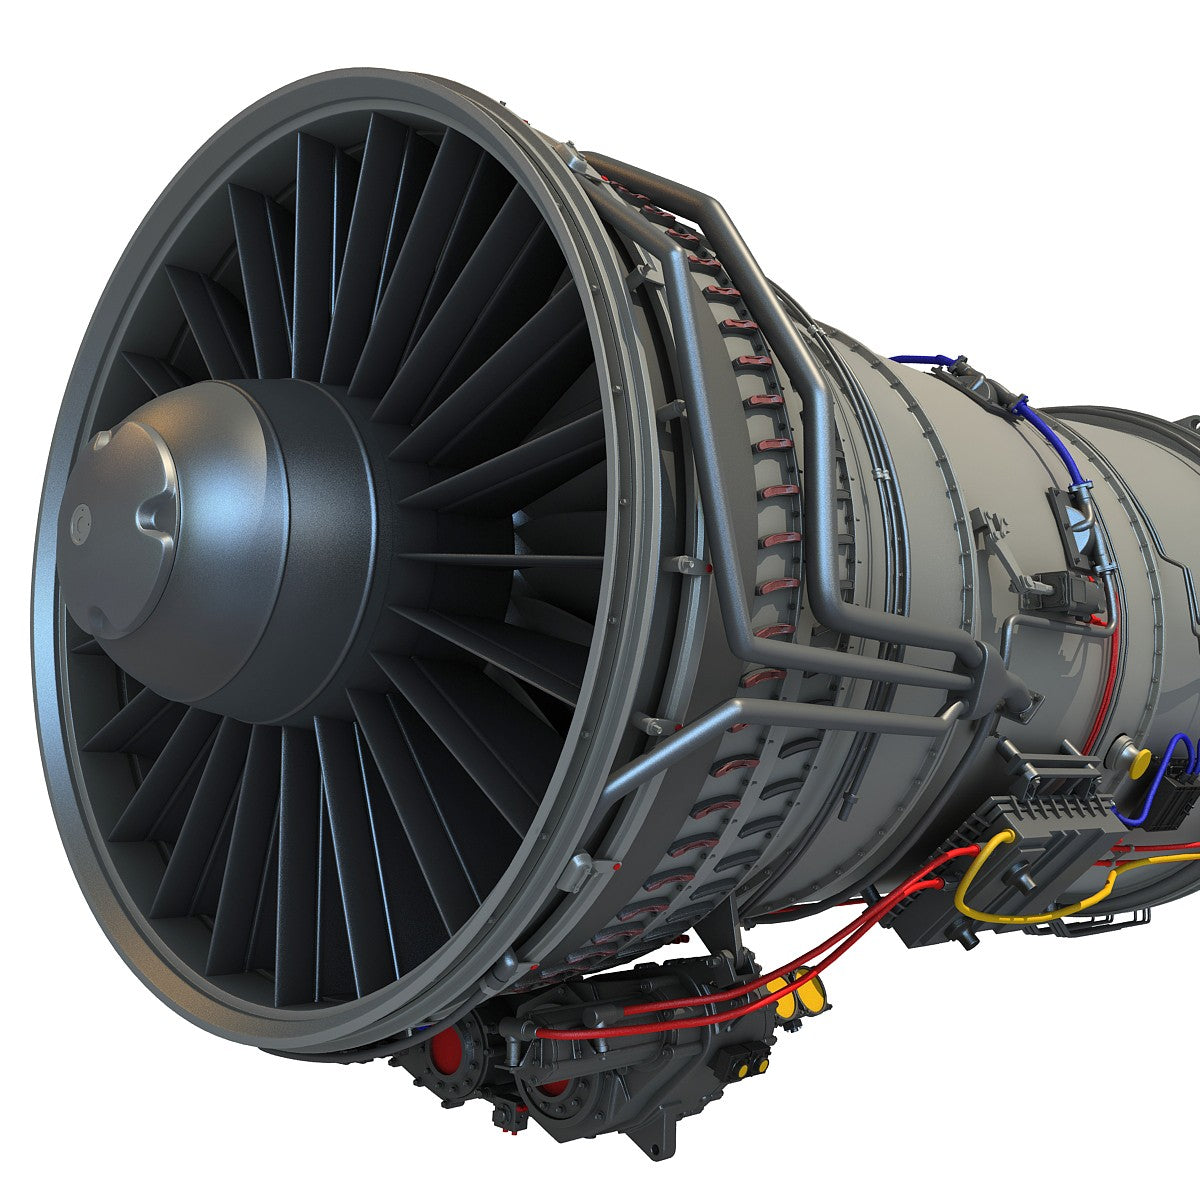 Military Turbofan Engine